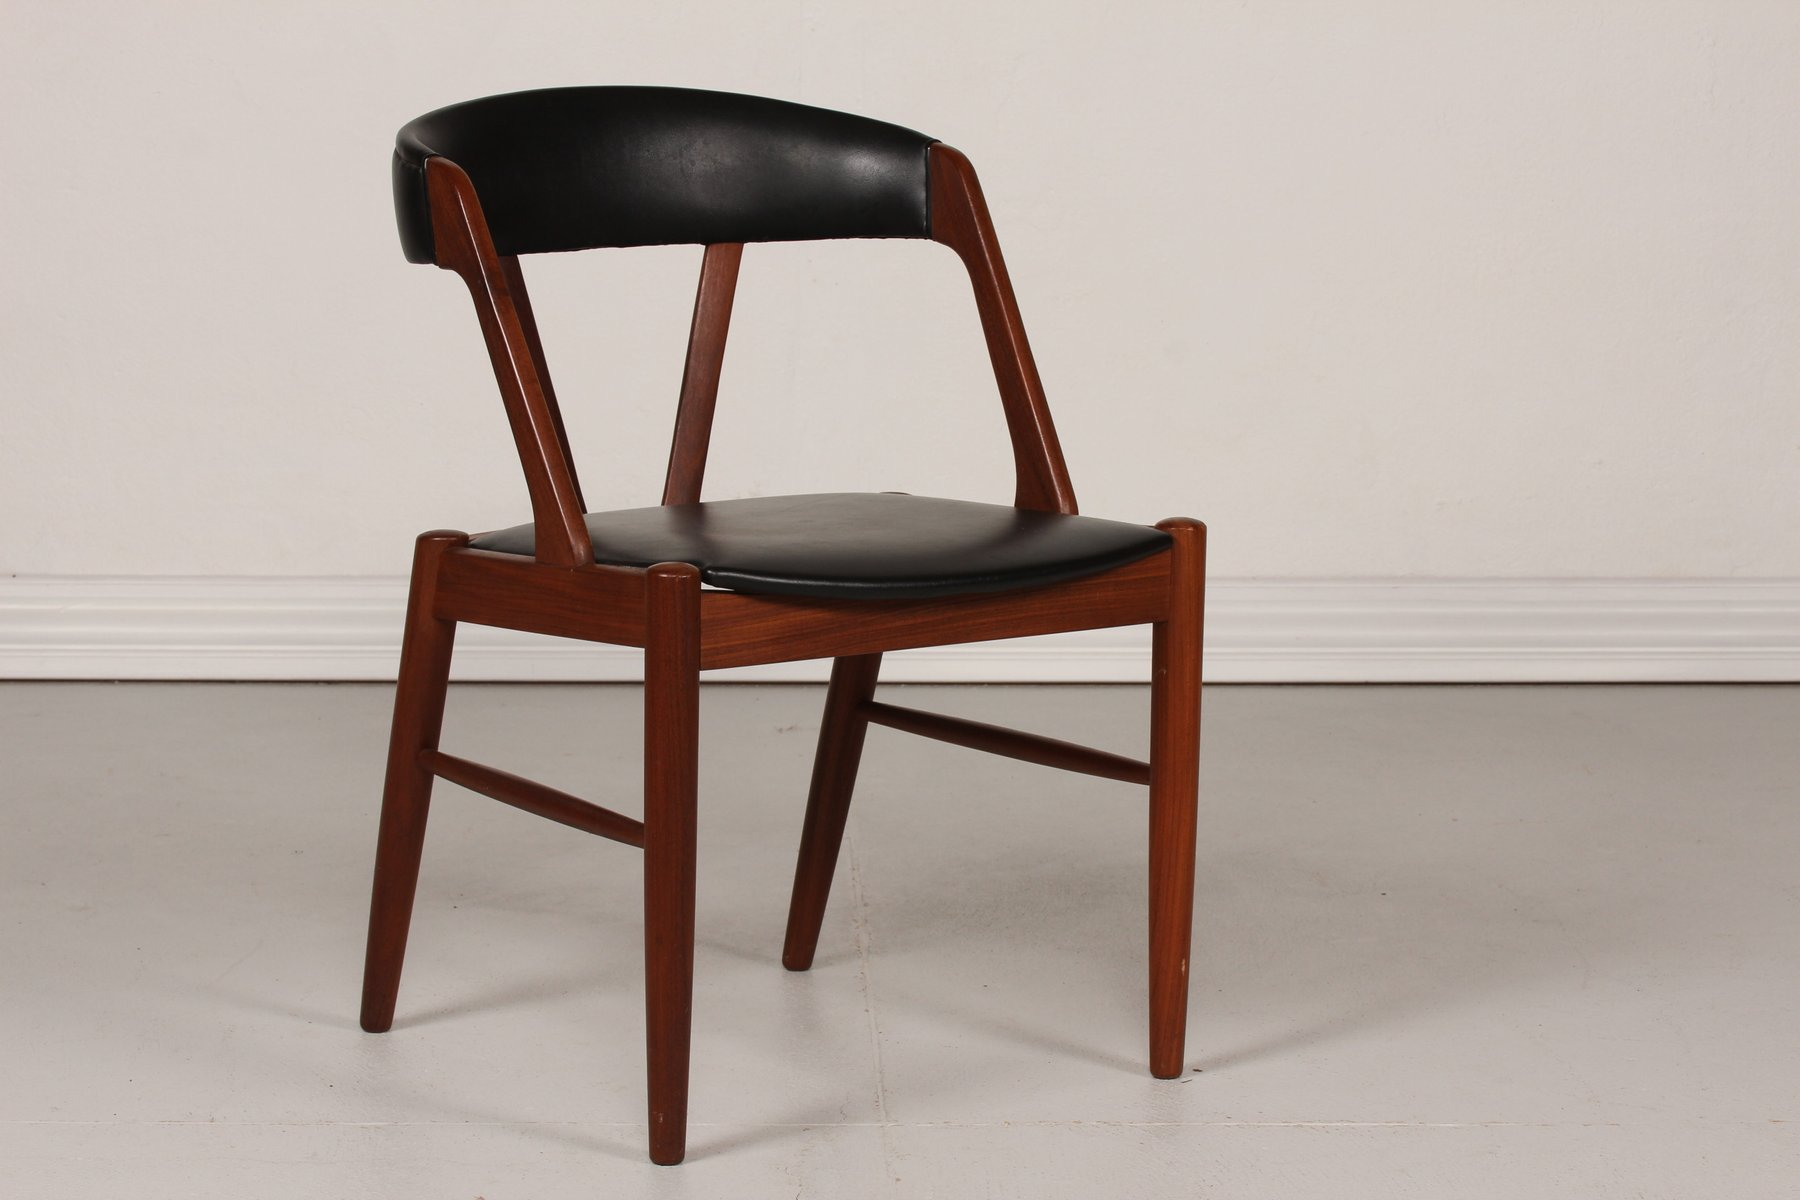 Danish Desk Chair in Teak with Black Skai Seat 1960s for sale at